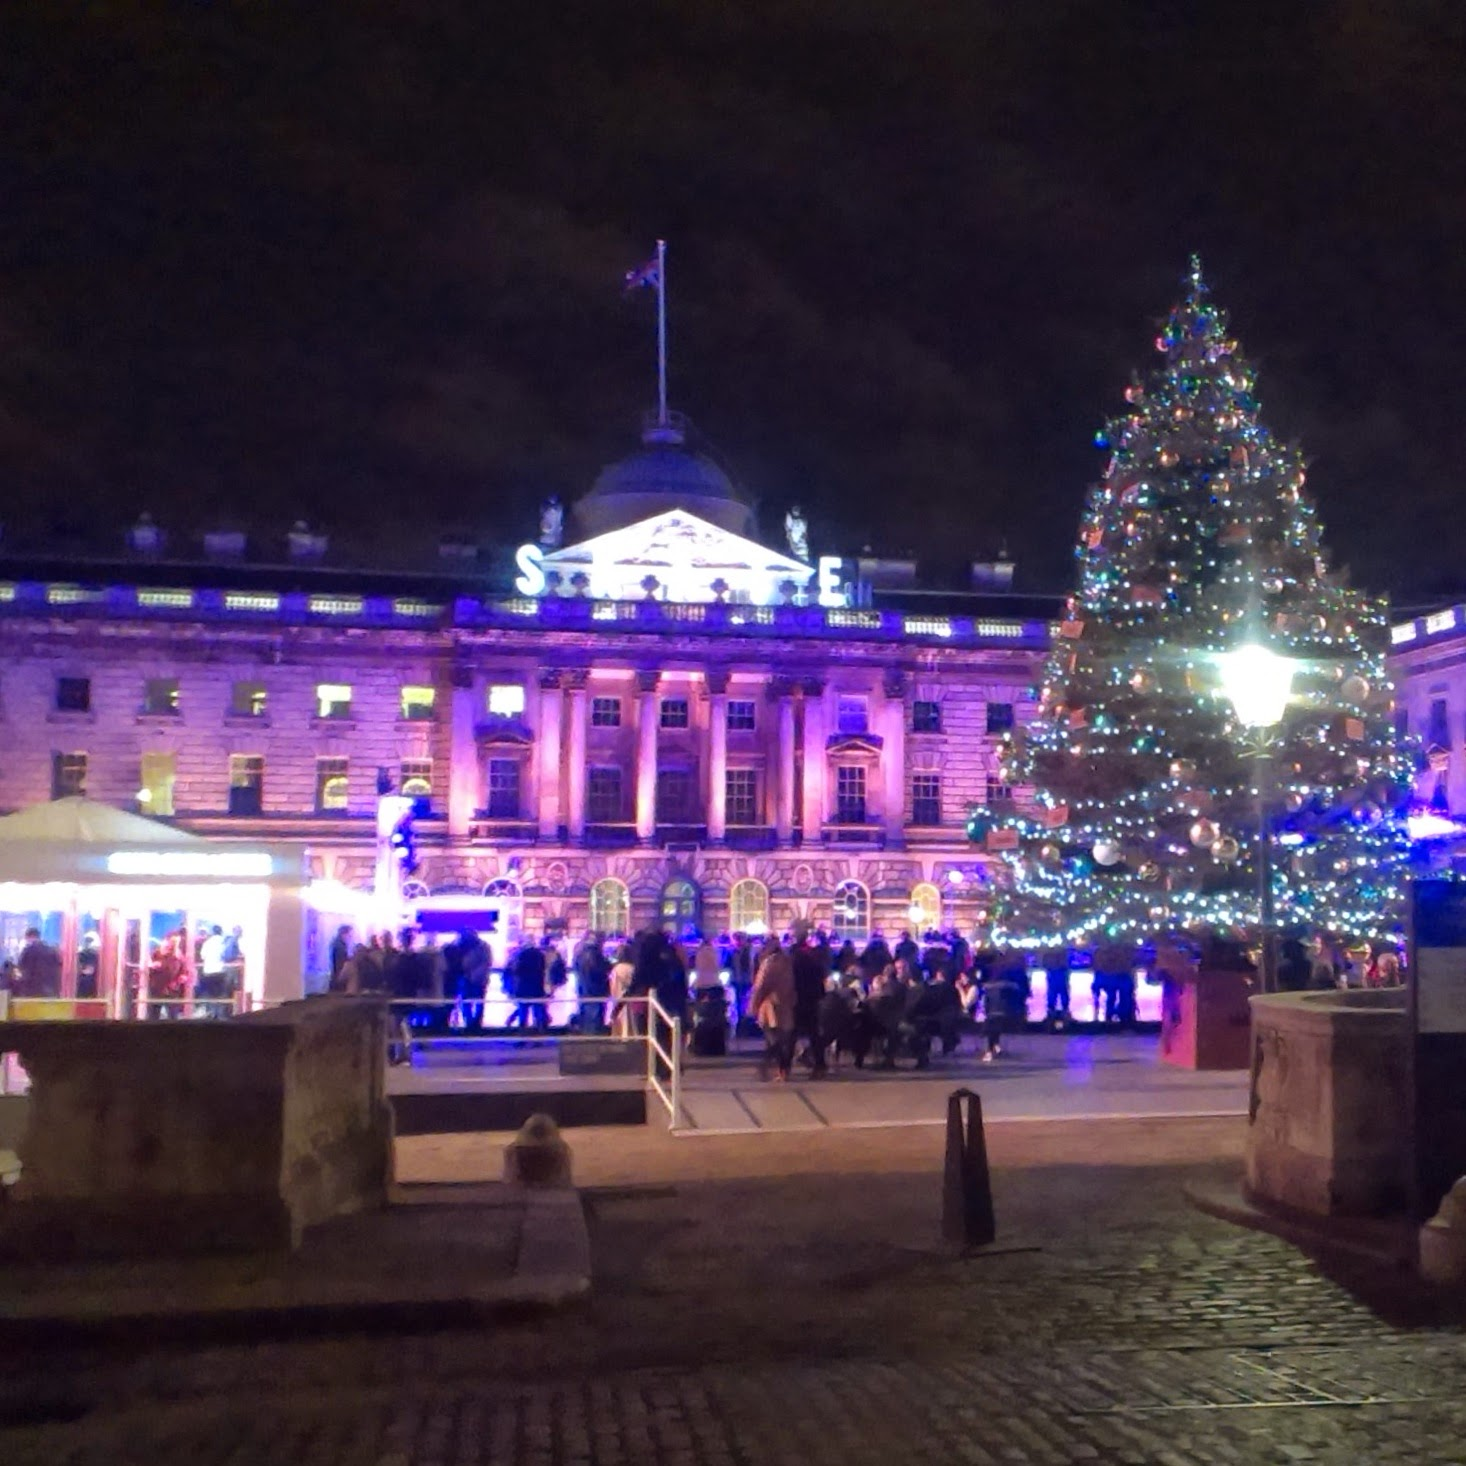 7pm - Somerset House skating